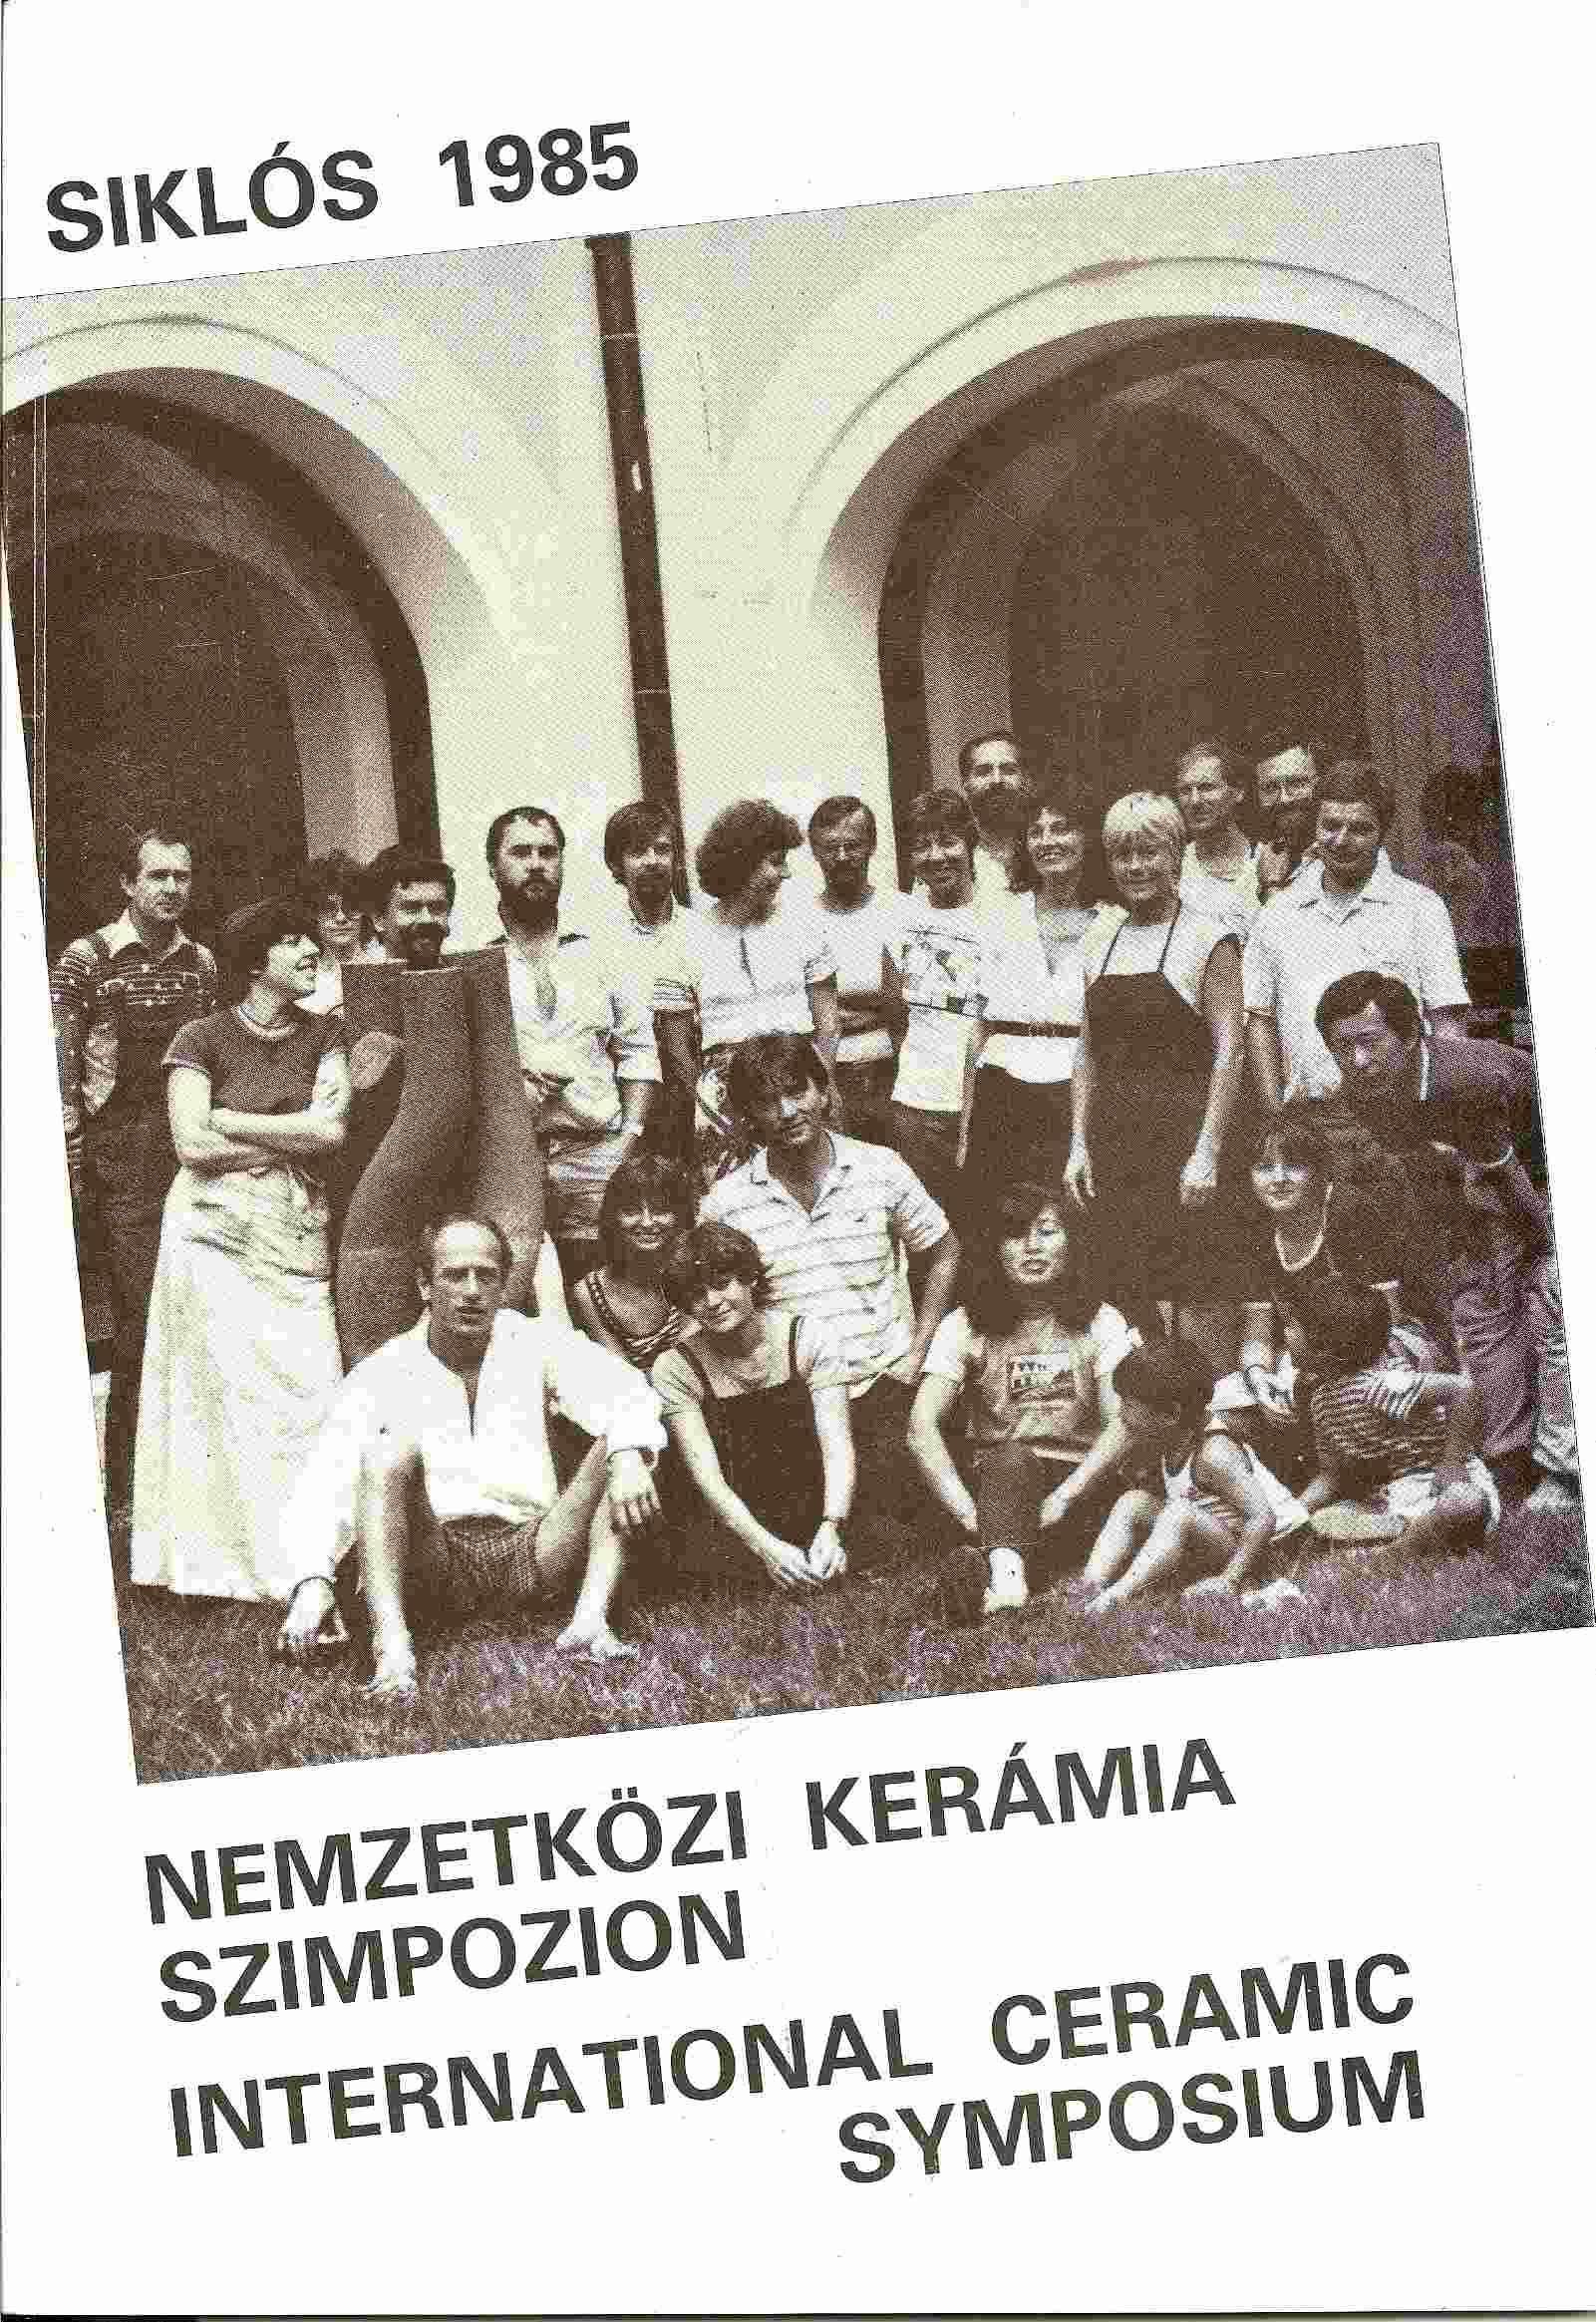 Image for INTERNATIONAL CERAMIC SYMPOSIUM 1985; NEMZETKOZI KERAMIA SZIMPOZION